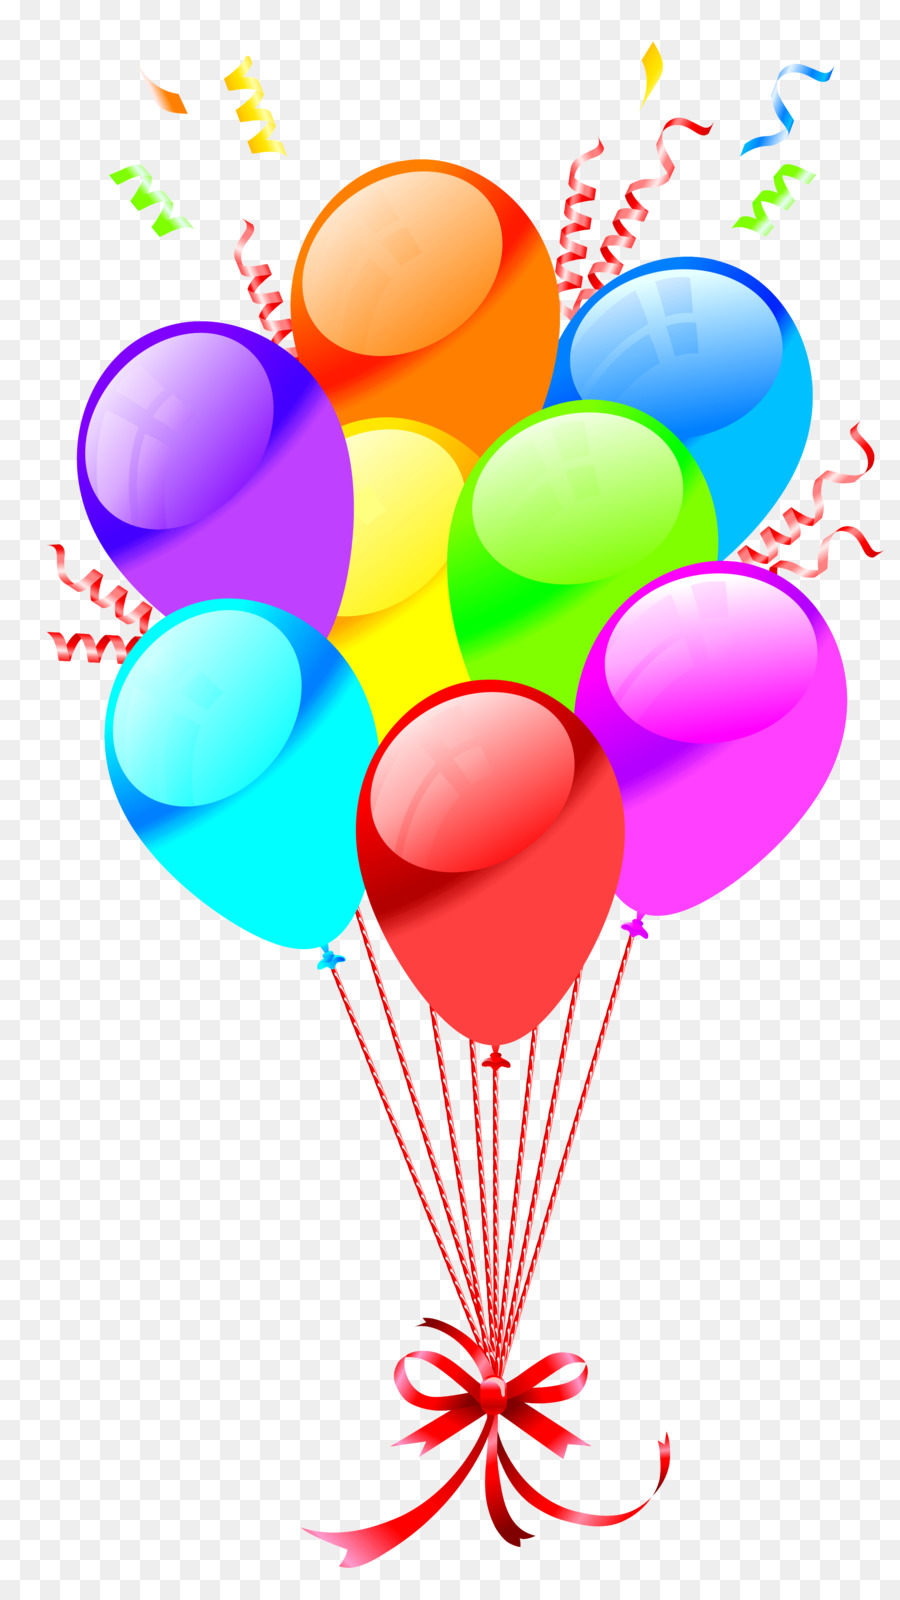 Happy Birthday Balloons clipart.